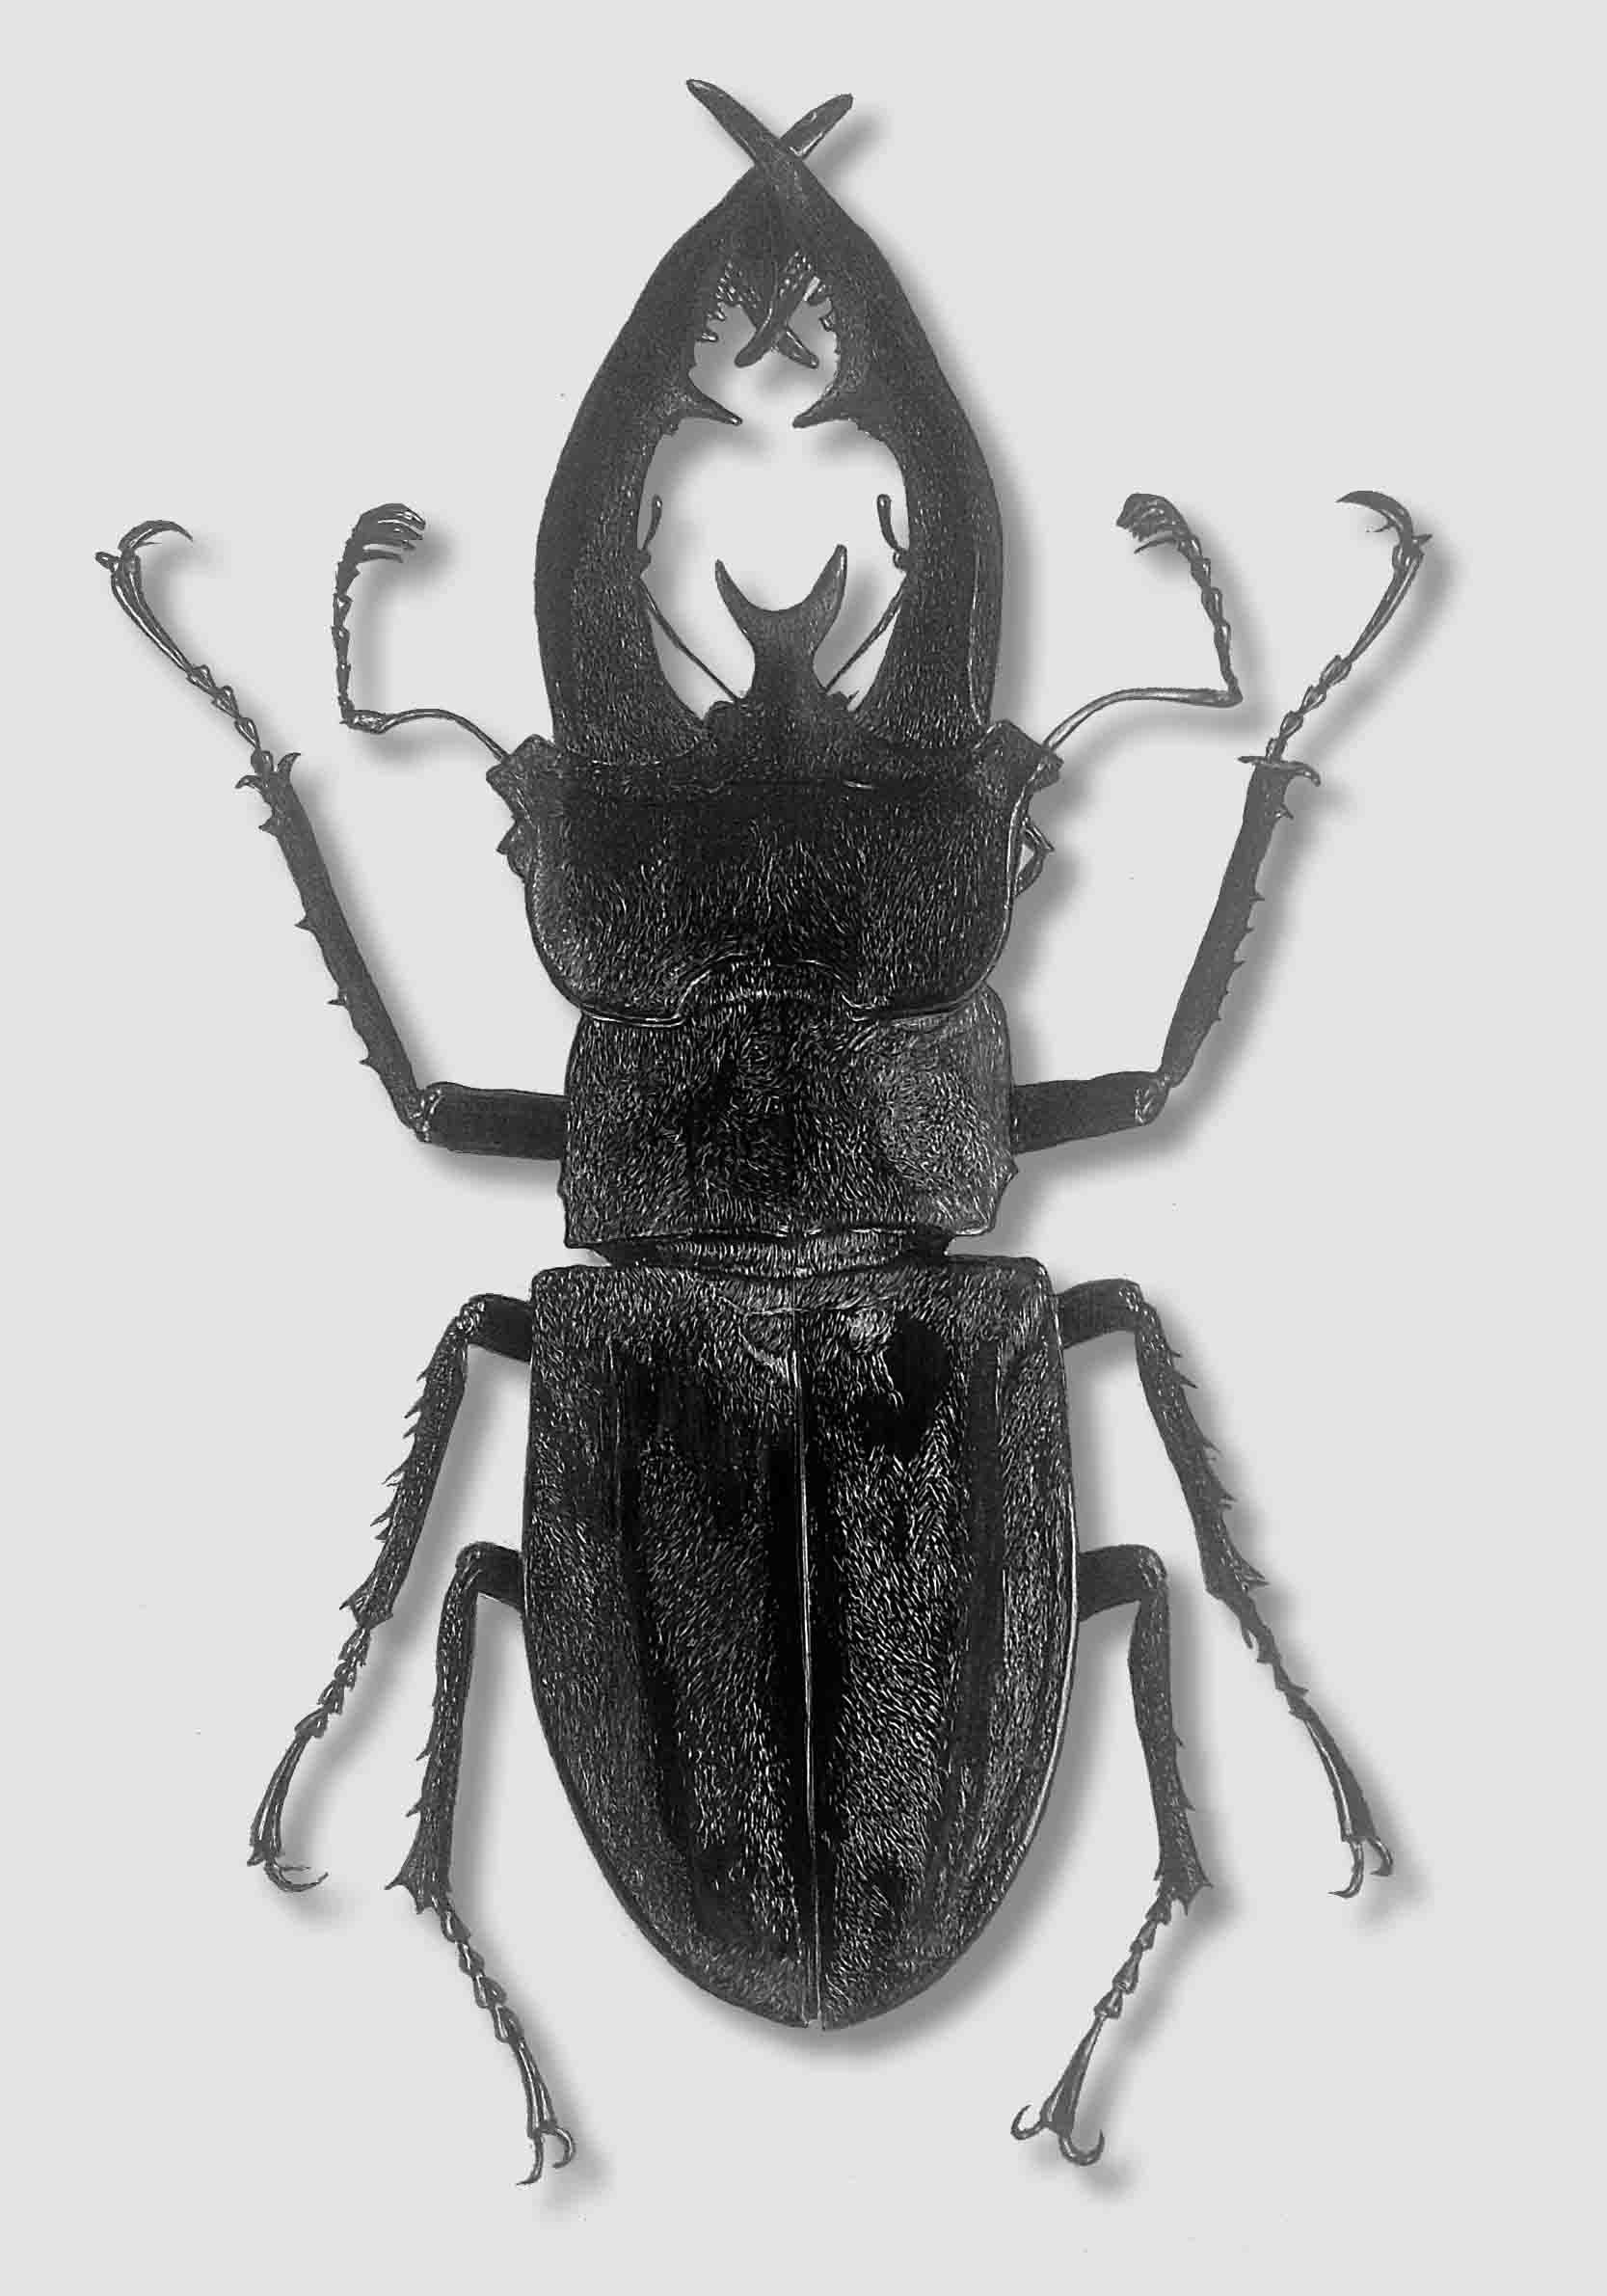 Eupholus beetle mix photo